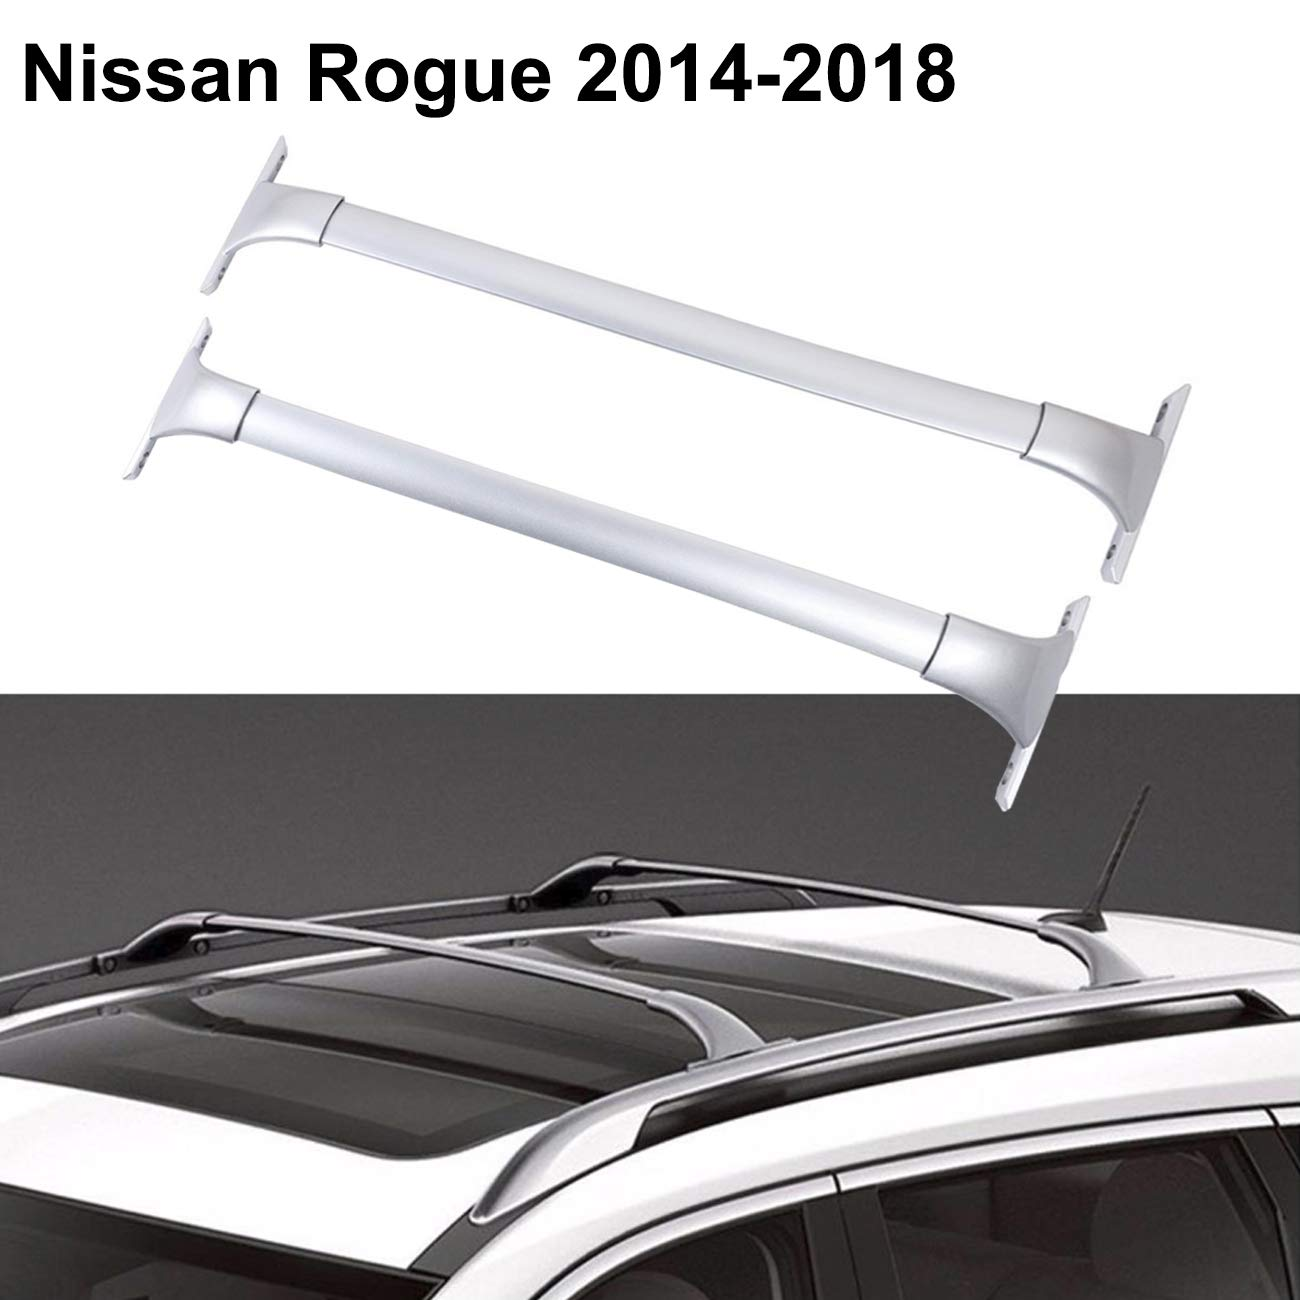 ALAVENTE Roof Rack for Nissan Rogue 2014-2018, Heavy Duty Cross Bars Top Roof Rail Roofrack Cargo Luggage Carrier (Pair, Silver)